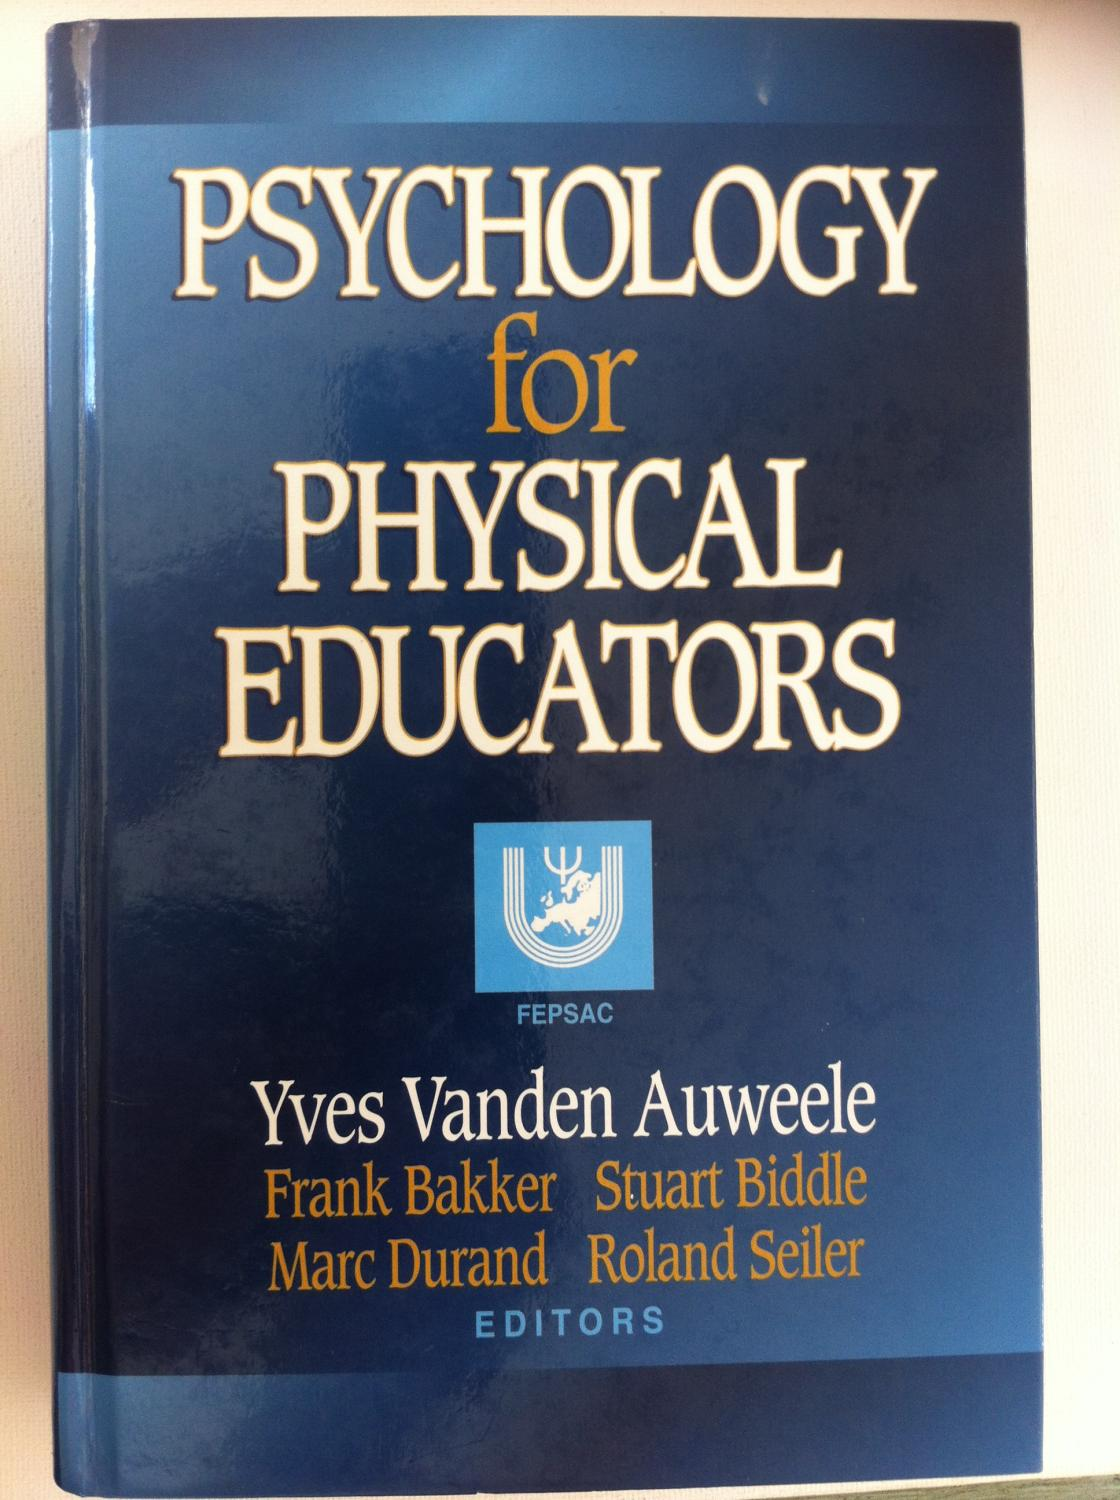 Psychology for Physical Educators - Auweele, Yves Vanden; Frank Bakker; Stuart Biddle; Marc Durand; Roland Seiler